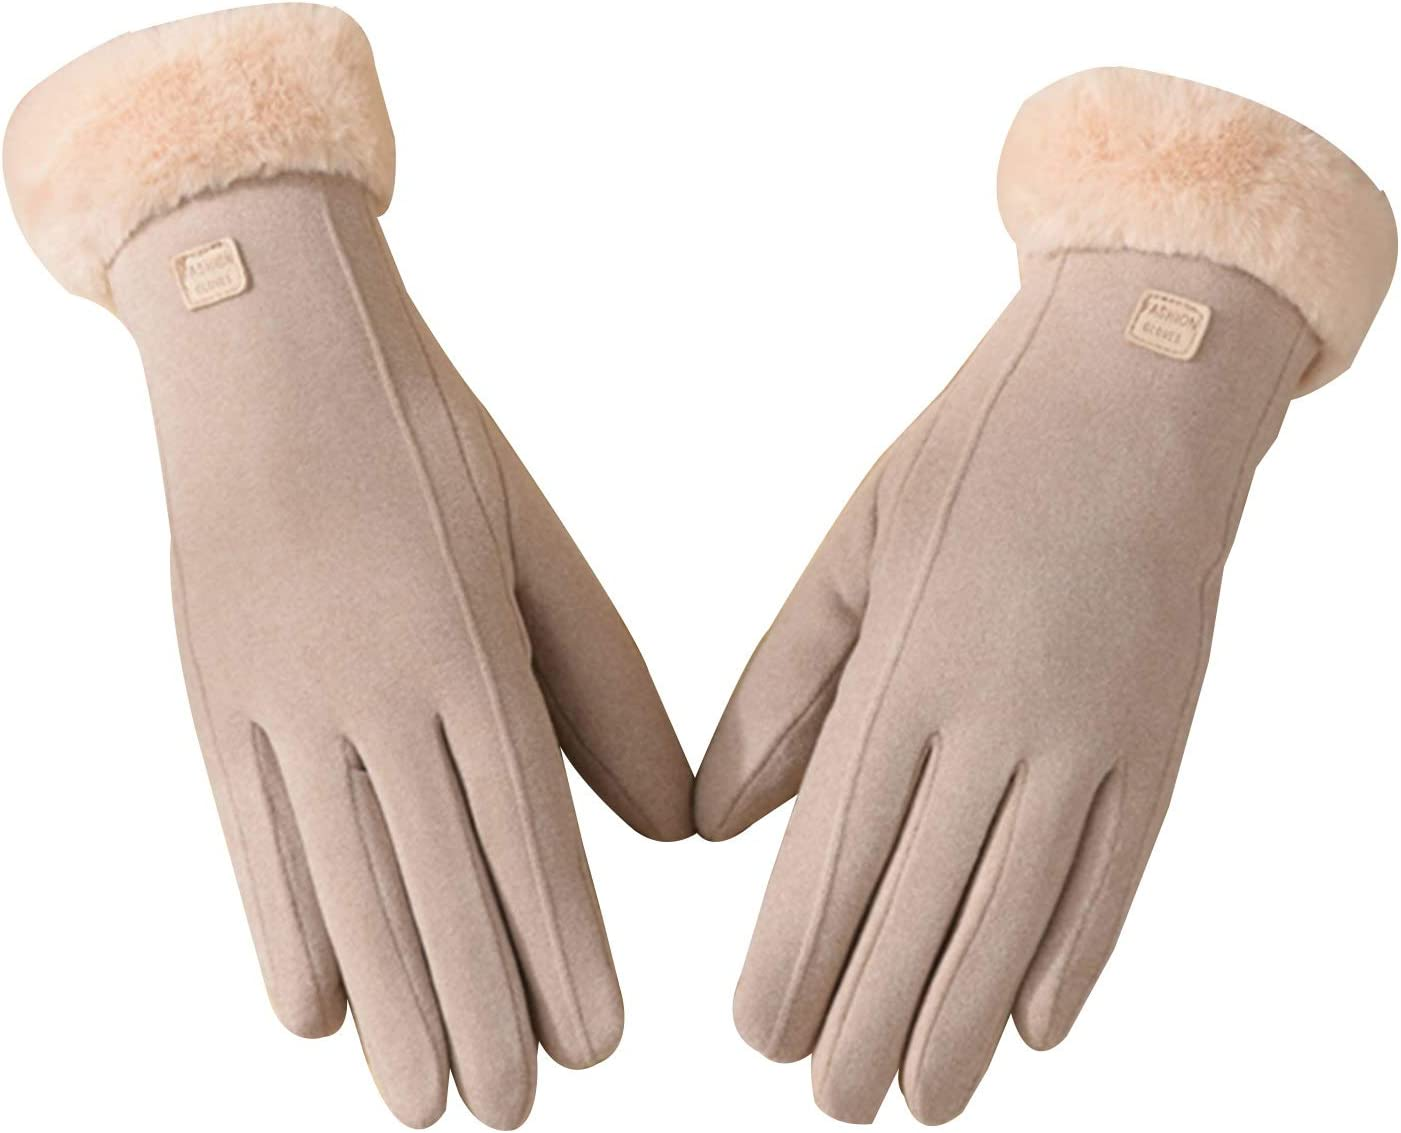 Gloves Gloves Soft Suede Warm Plush Lining Touch Screen Gloves Suitable for Women in Cold Weather (Color : Khaki)